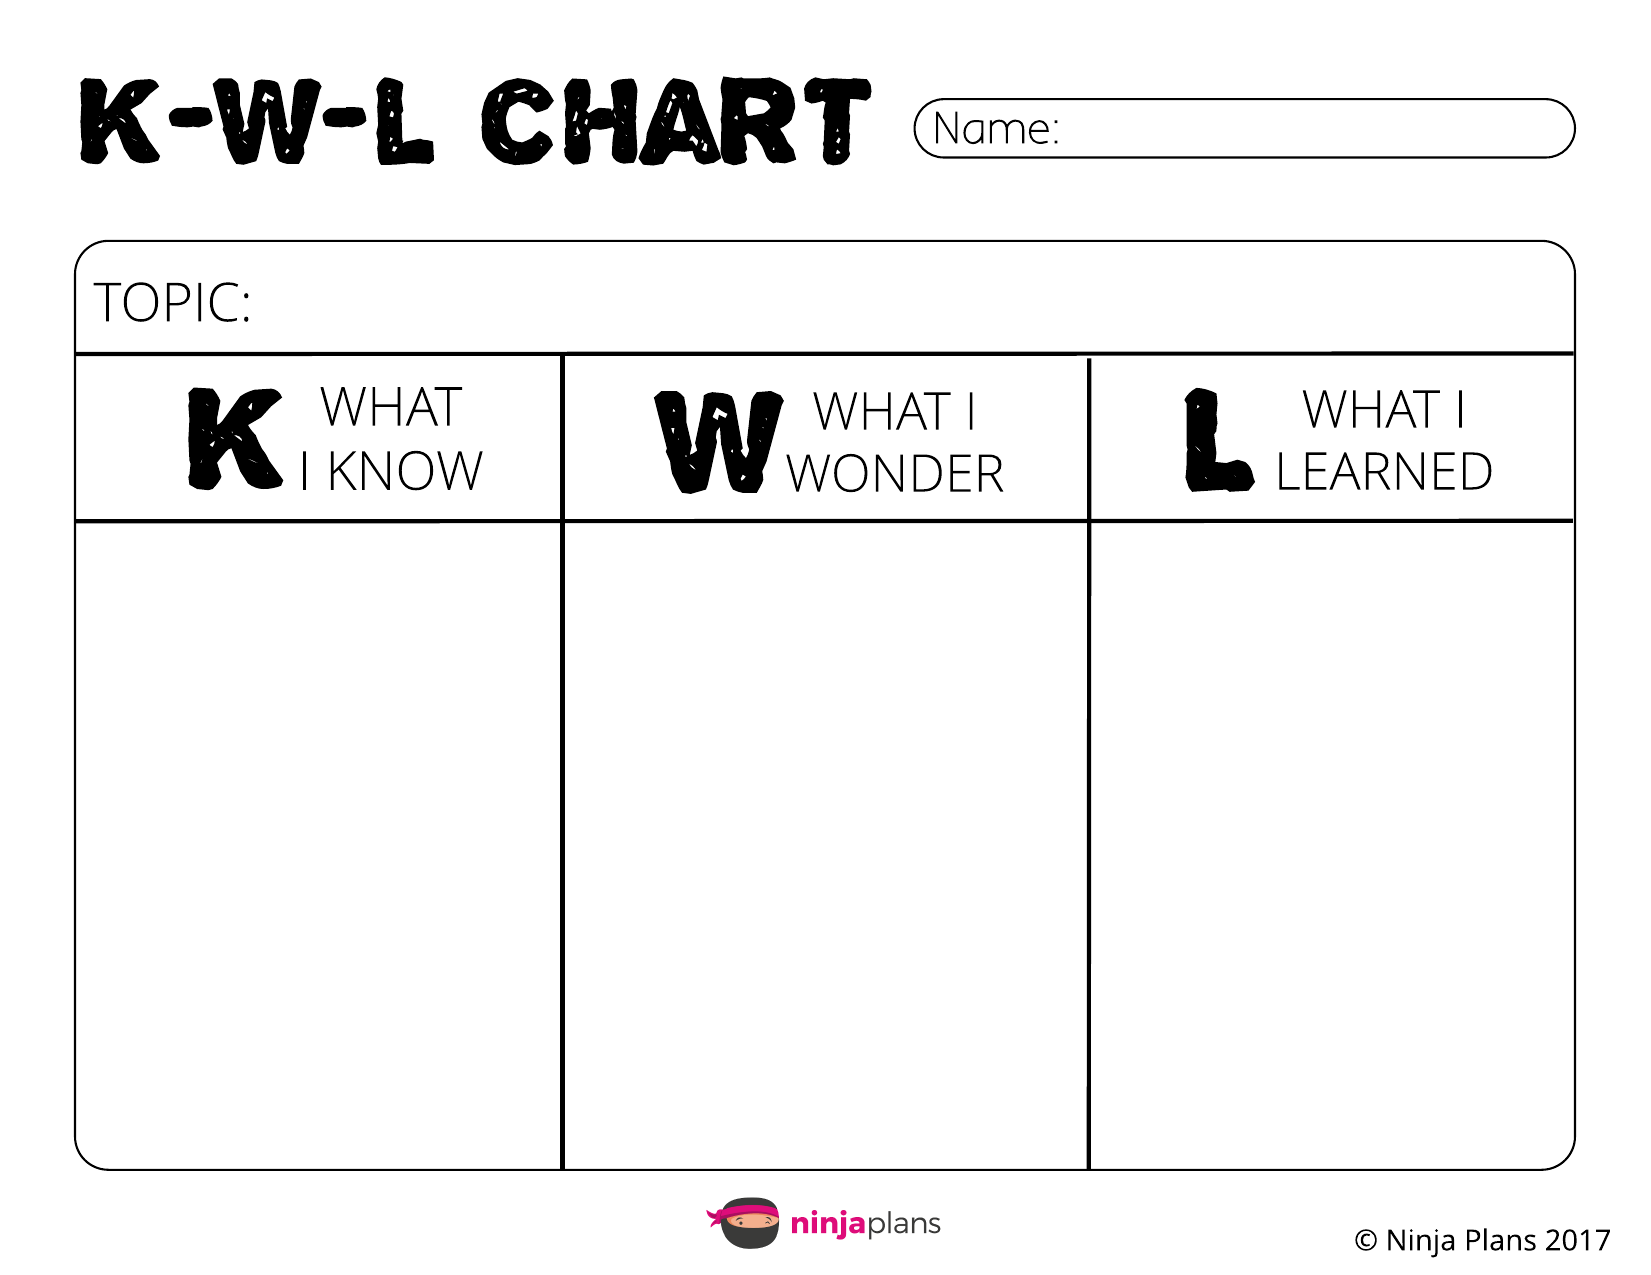 image relating to Kwl Chart Printable identify KWL Chart as a result of ninjaplans · Ninja Ideas